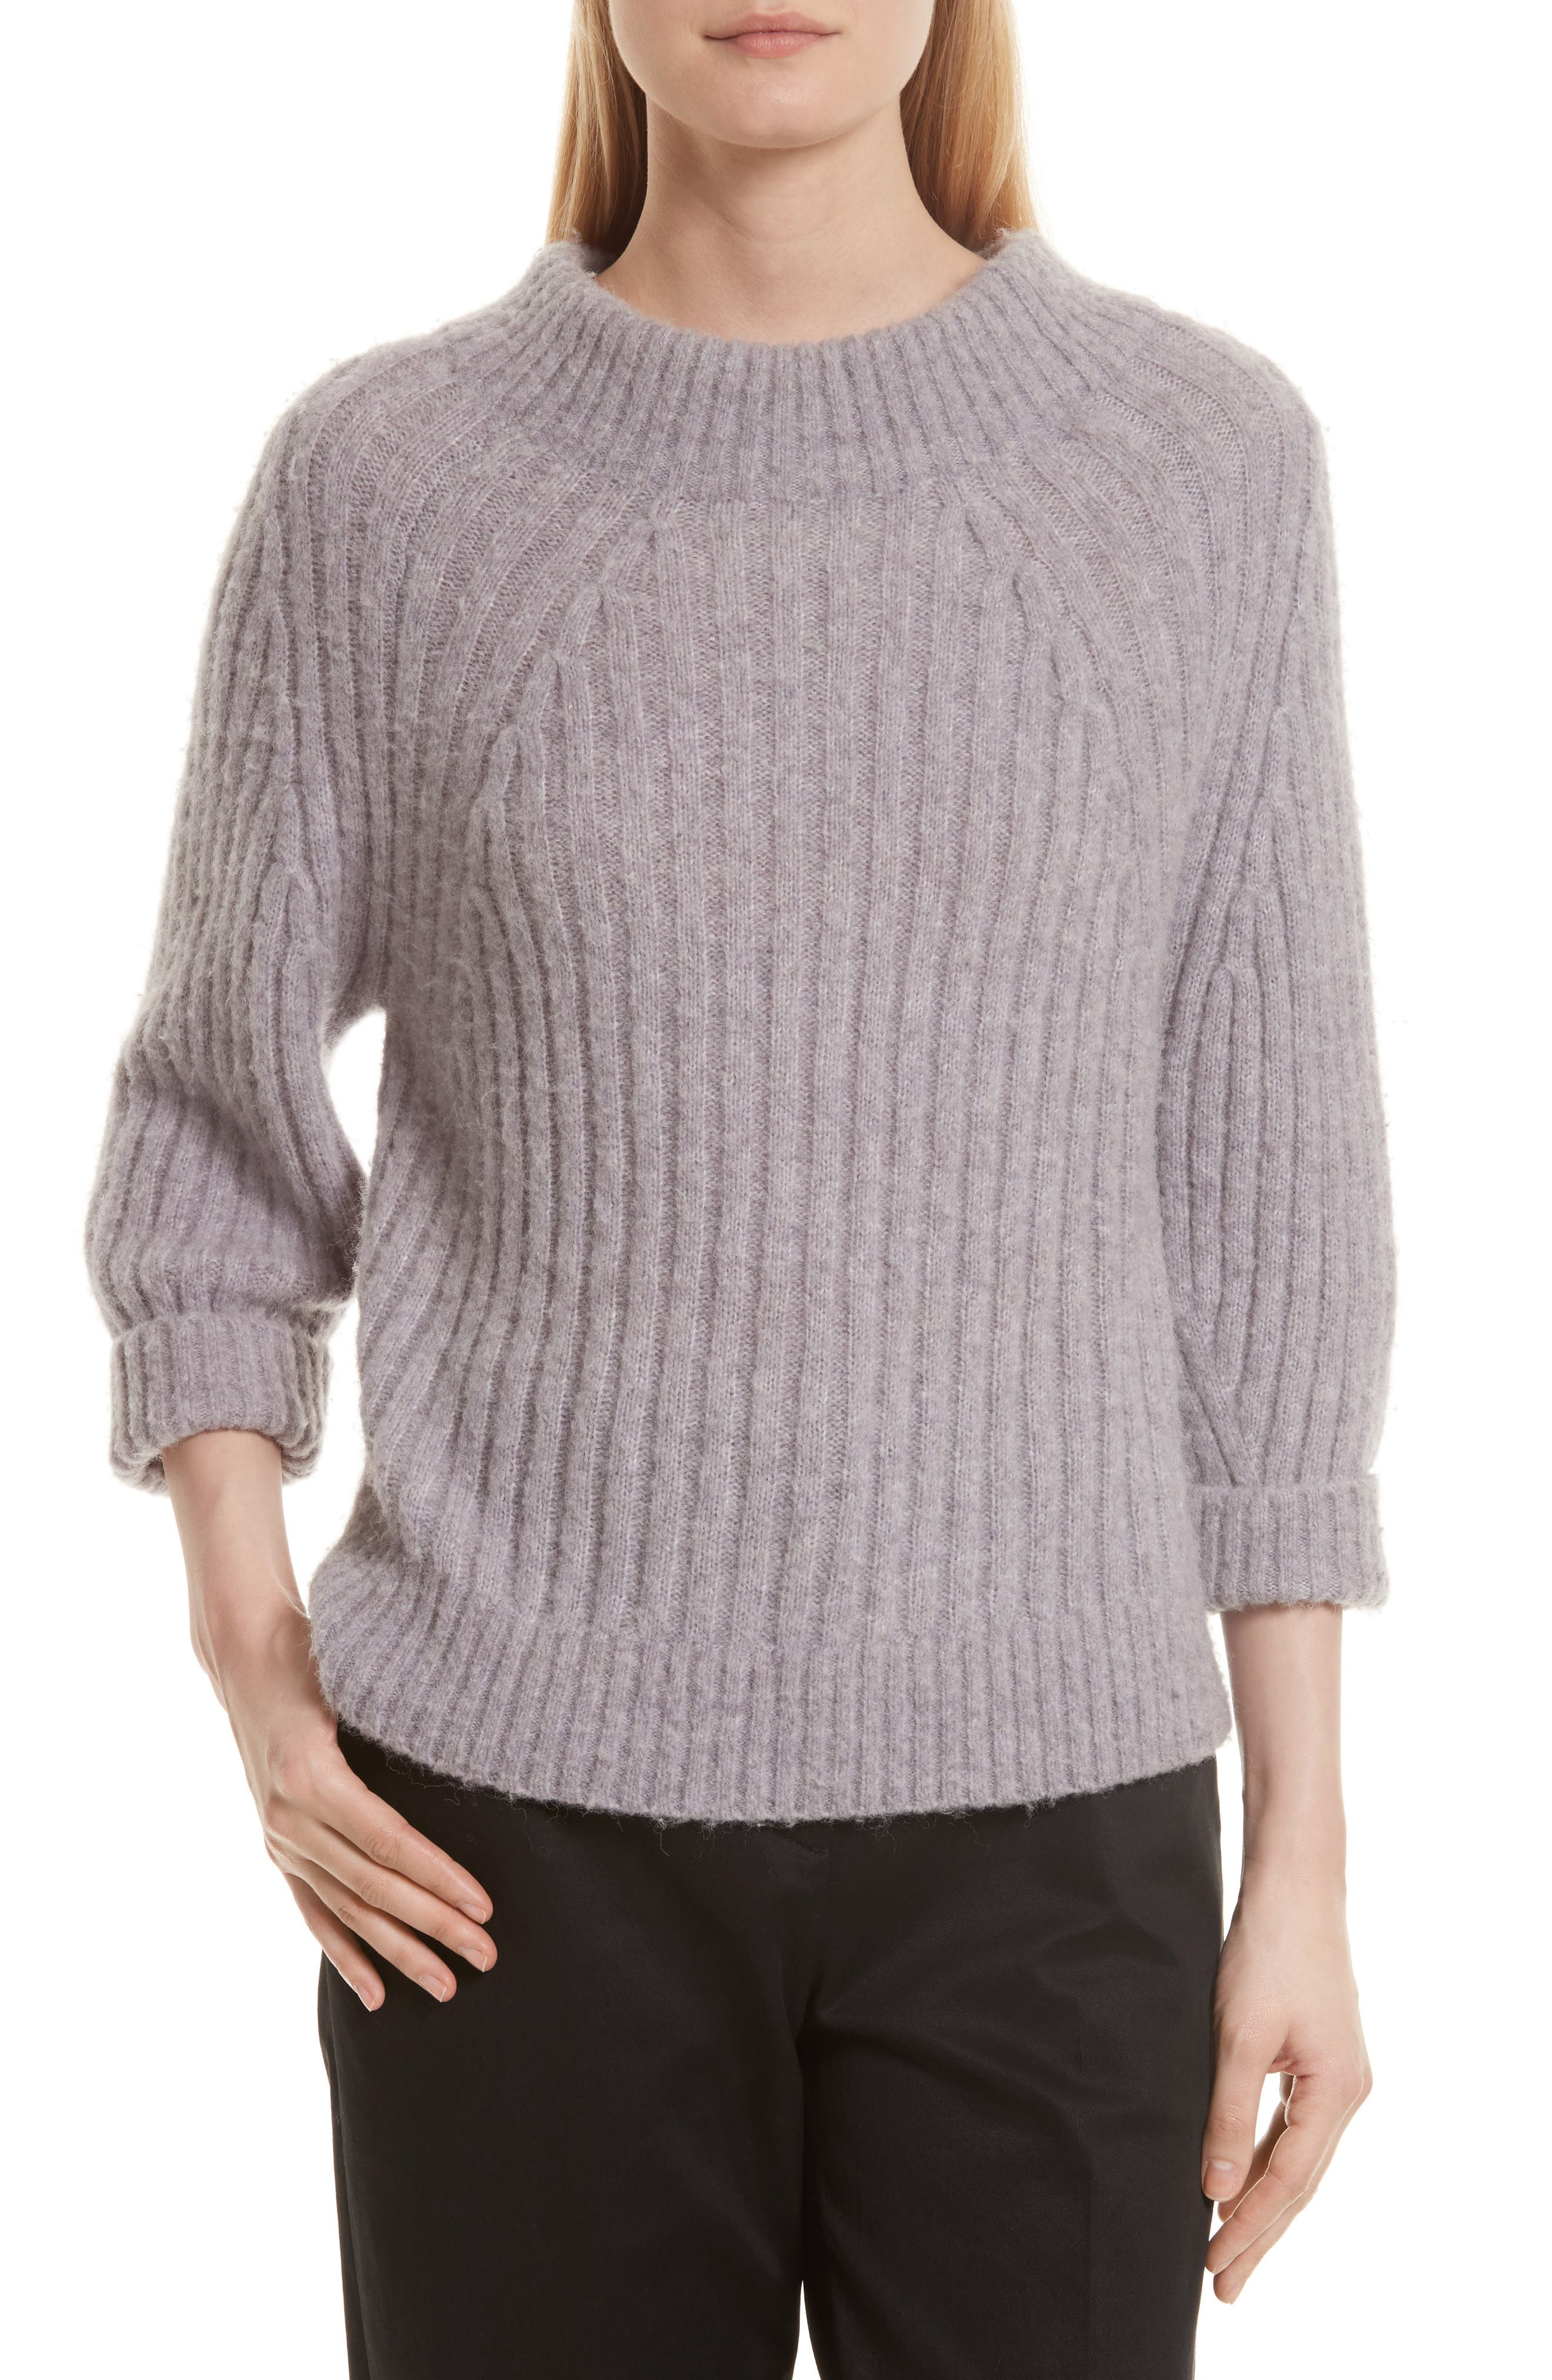 3.1 Phillip Lim Rib Knit Sweater